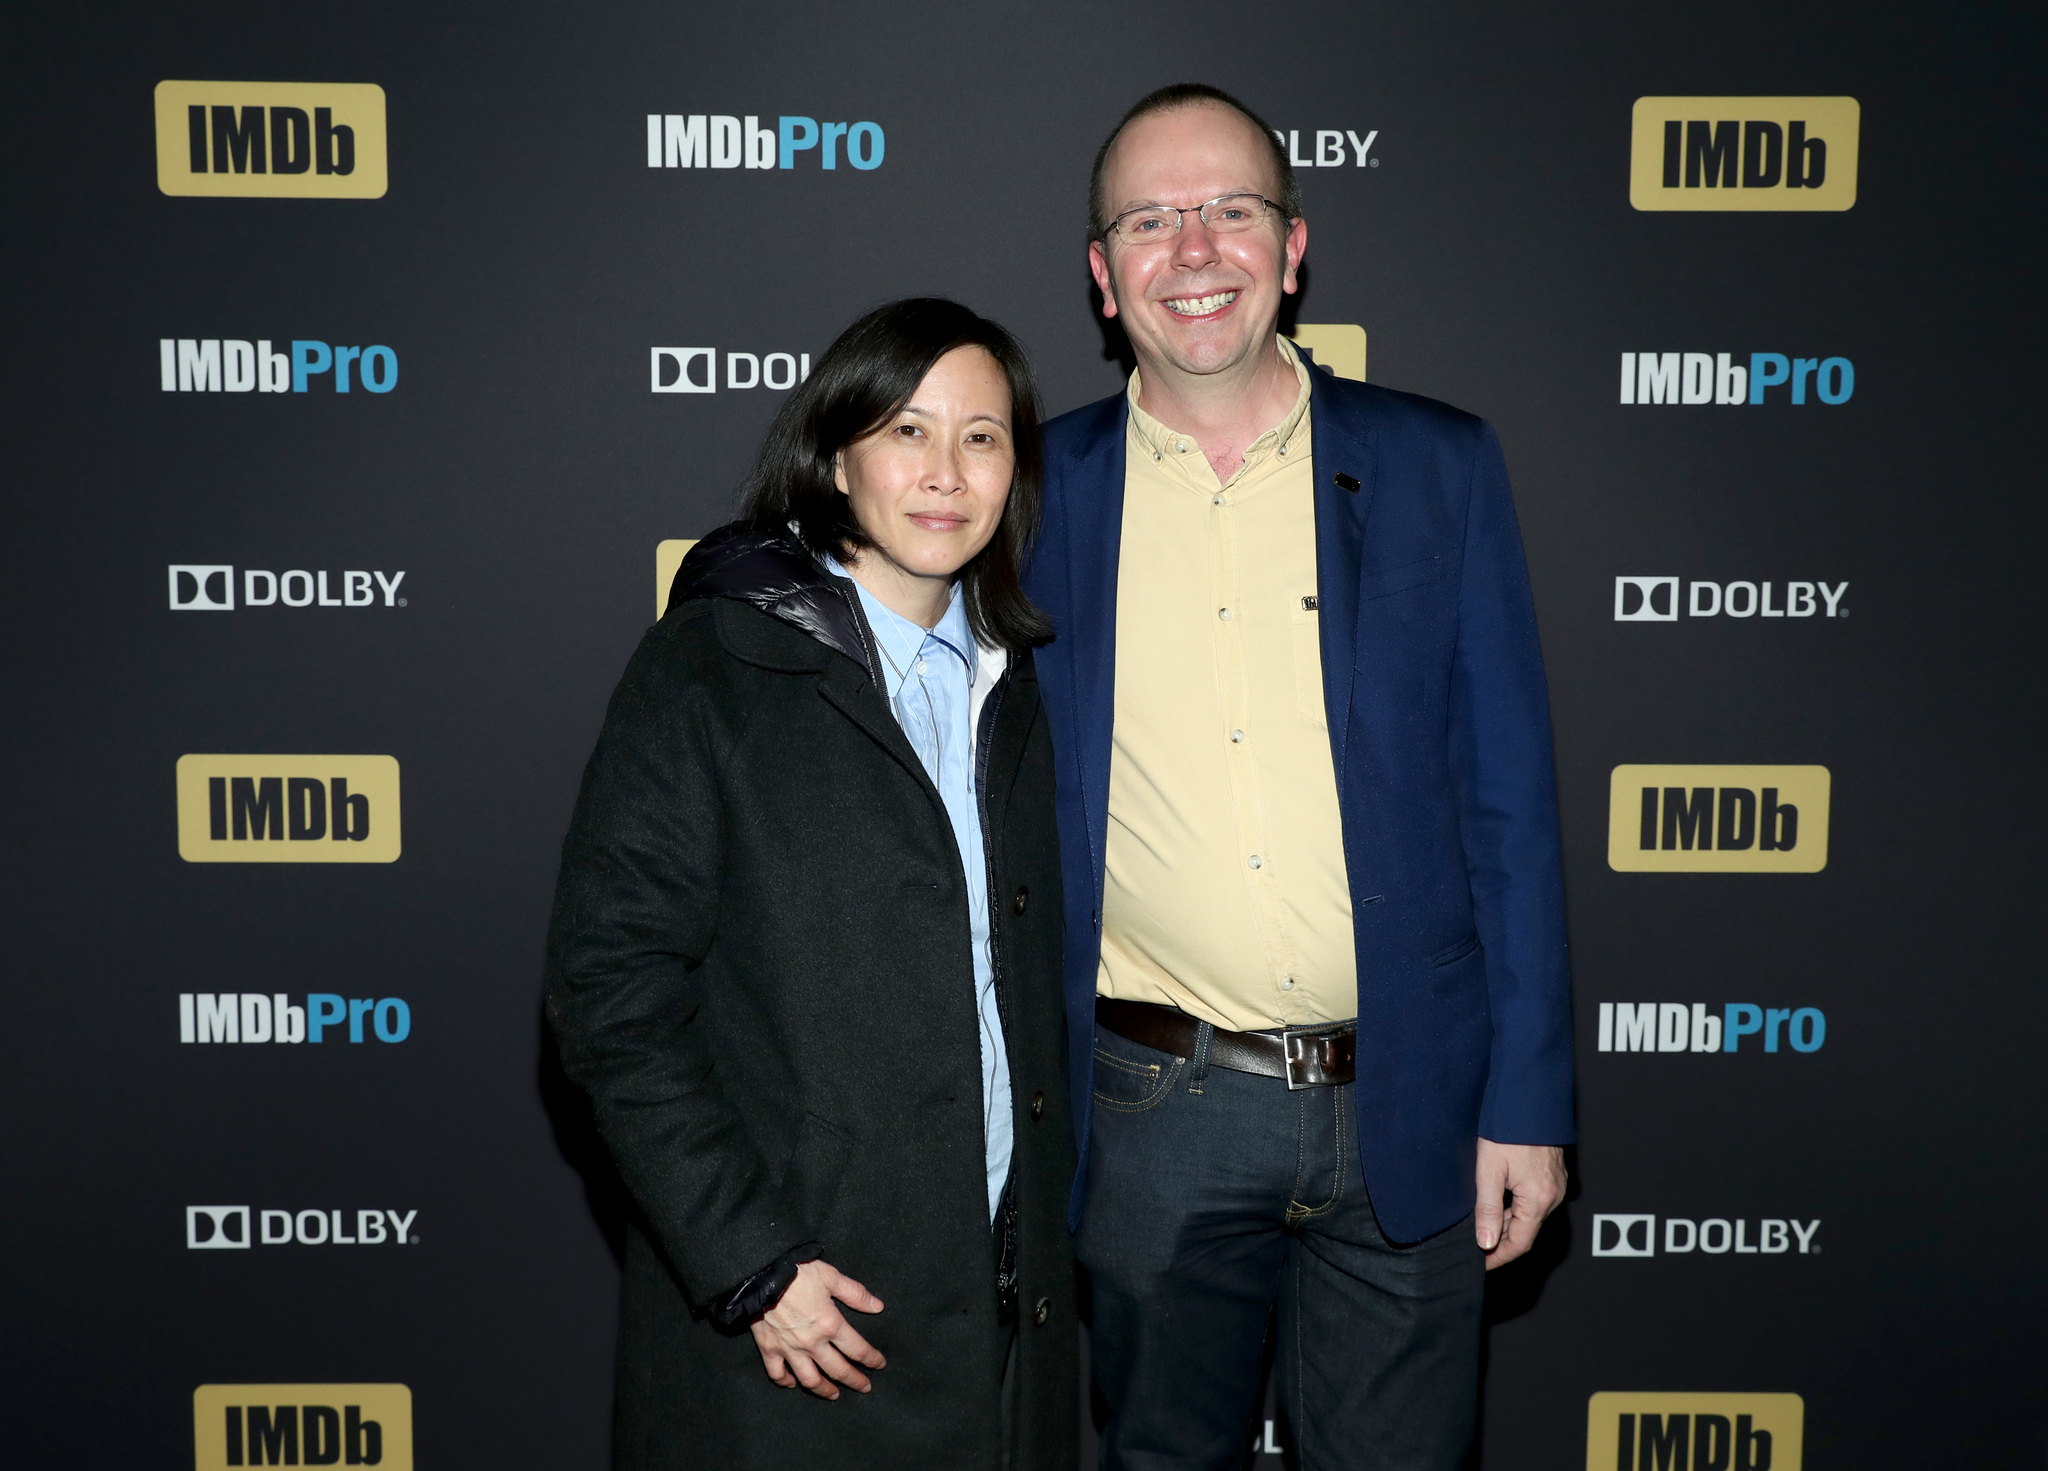 Col Needham and Kim Yutani